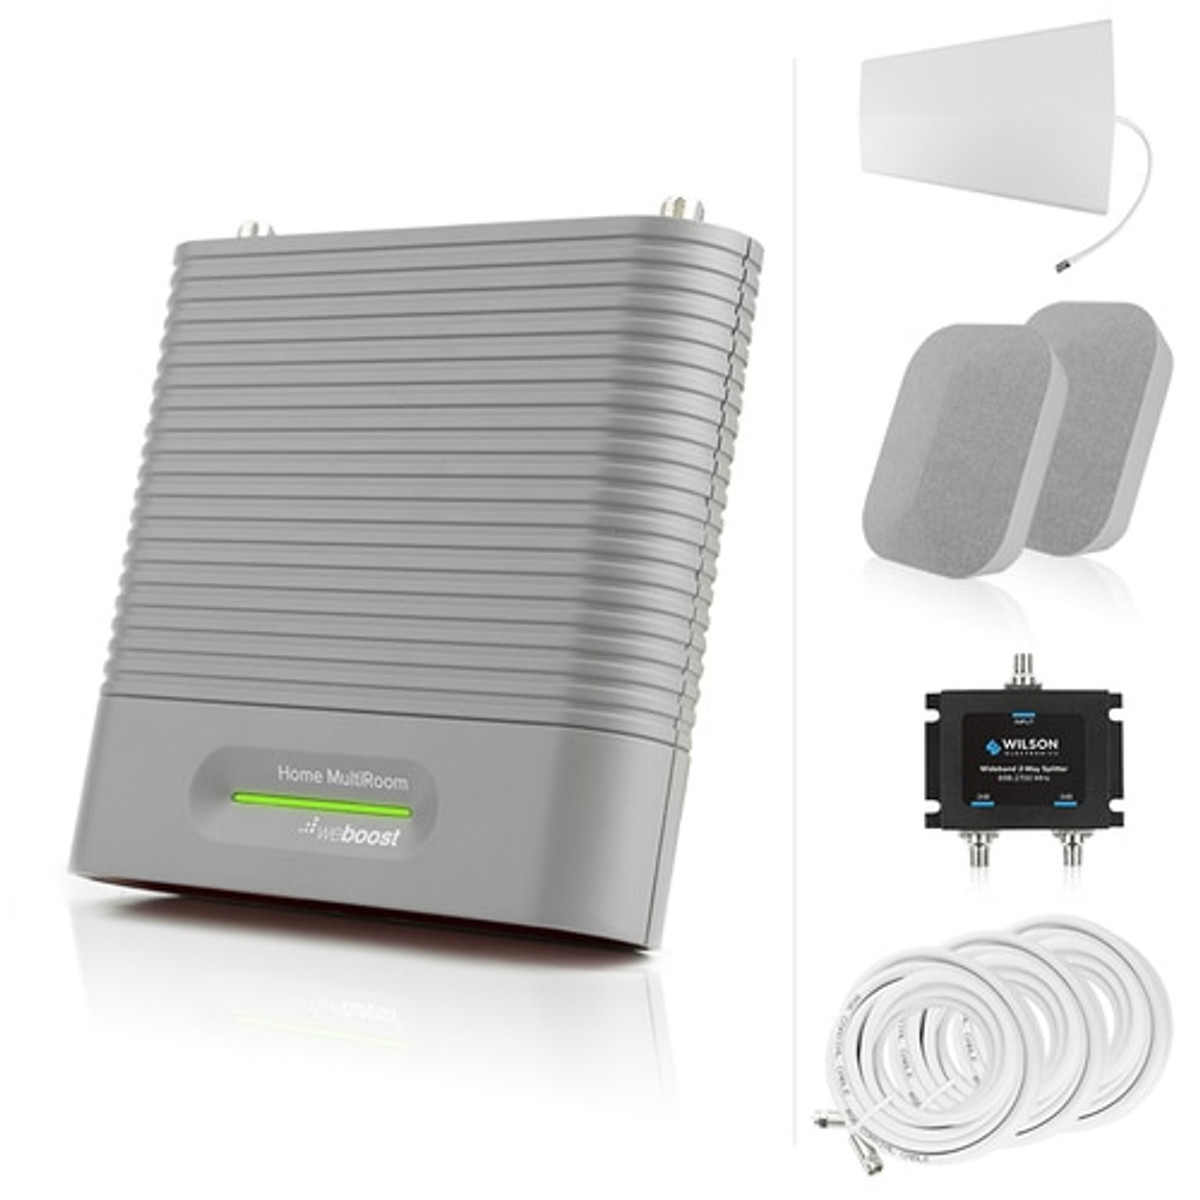 weBoost Home MultiRoom Signal Booster - 470144 & Antenna Expansion Bundle